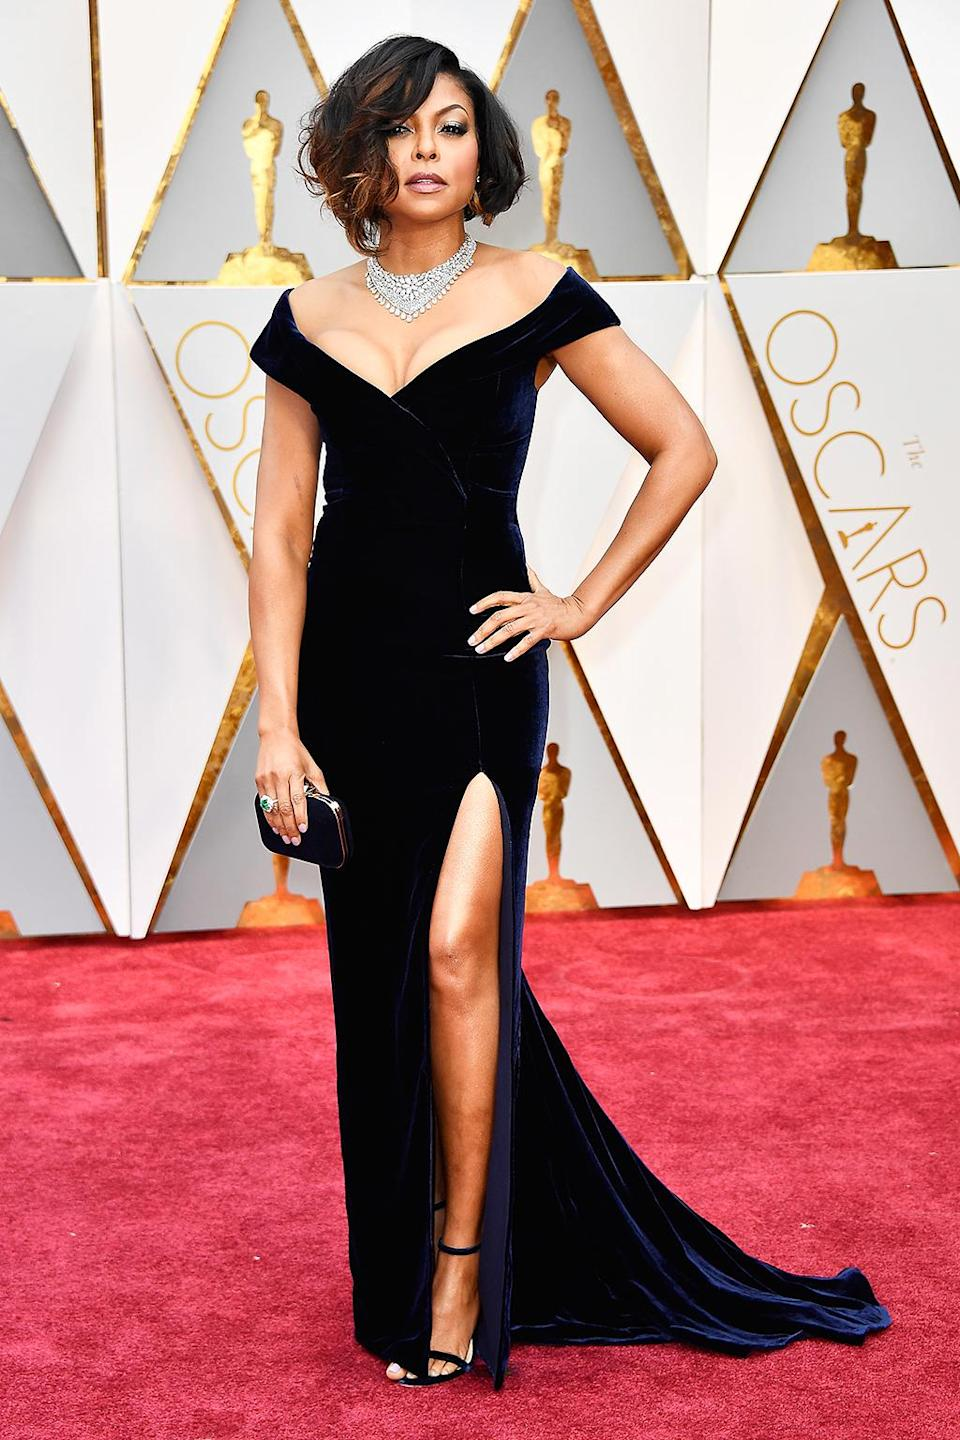 """<p>Actress Taraji P. Henson attends the 89th Annual Academy Awards at Hollywood & Highland Center on February 26, 2017 in Hollywood, California. (Photo by Frazer Harrison/Getty Images)<br><br><a rel=""""nofollow"""" href=""""https://www.yahoo.com/style/oscars-2017-vote-for-the-best-and-worst-dressed-225105125.html"""" data-ylk=""""slk:Go here to vote for best and worst dressed.;outcm:mb_qualified_link;_E:mb_qualified_link;ct:story;"""" class=""""link rapid-noclick-resp yahoo-link"""">Go here to vote for best and worst dressed.</a> </p>"""